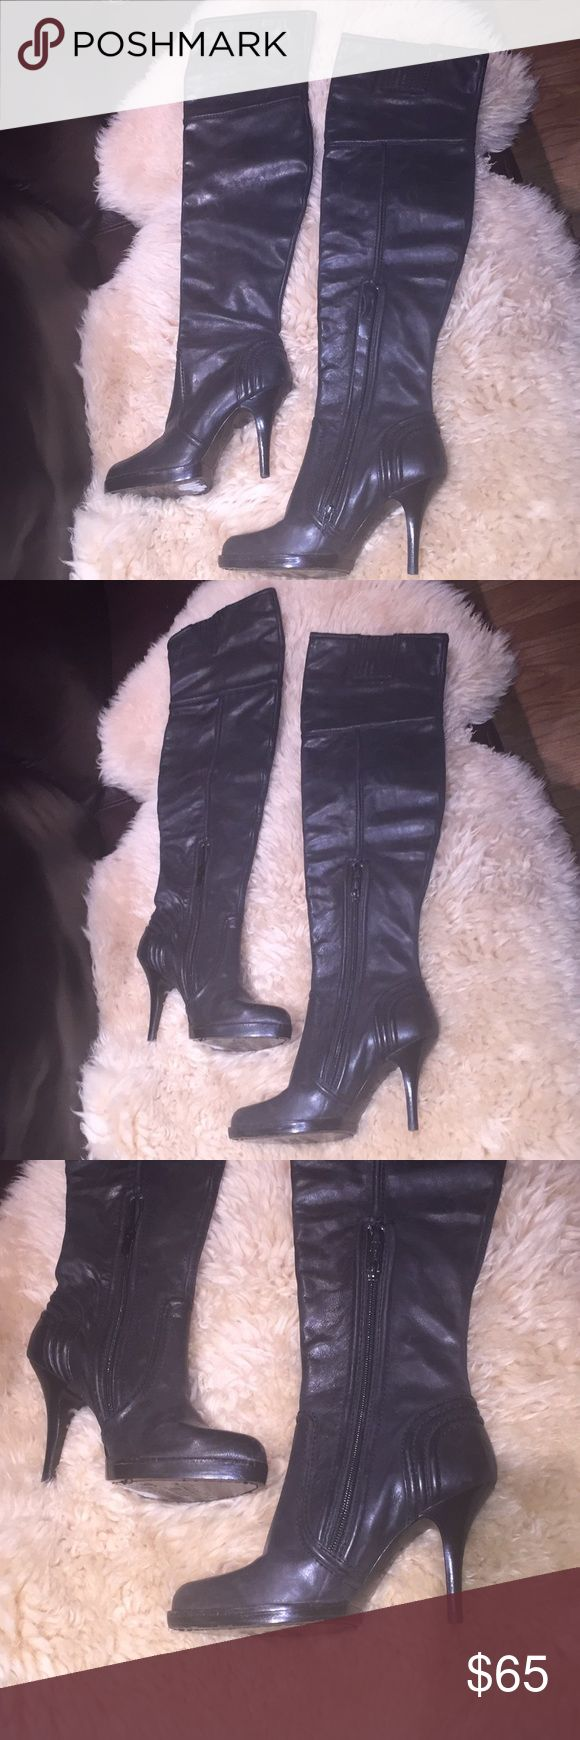 """Juicy Couture Boots - Size 6M New! Without tag.genuine leather. 3""""high heels. Calves 12"""". Length 12"""". Above the knee. Excellent condition! Juicy Couture Shoes Over the Knee Boots"""